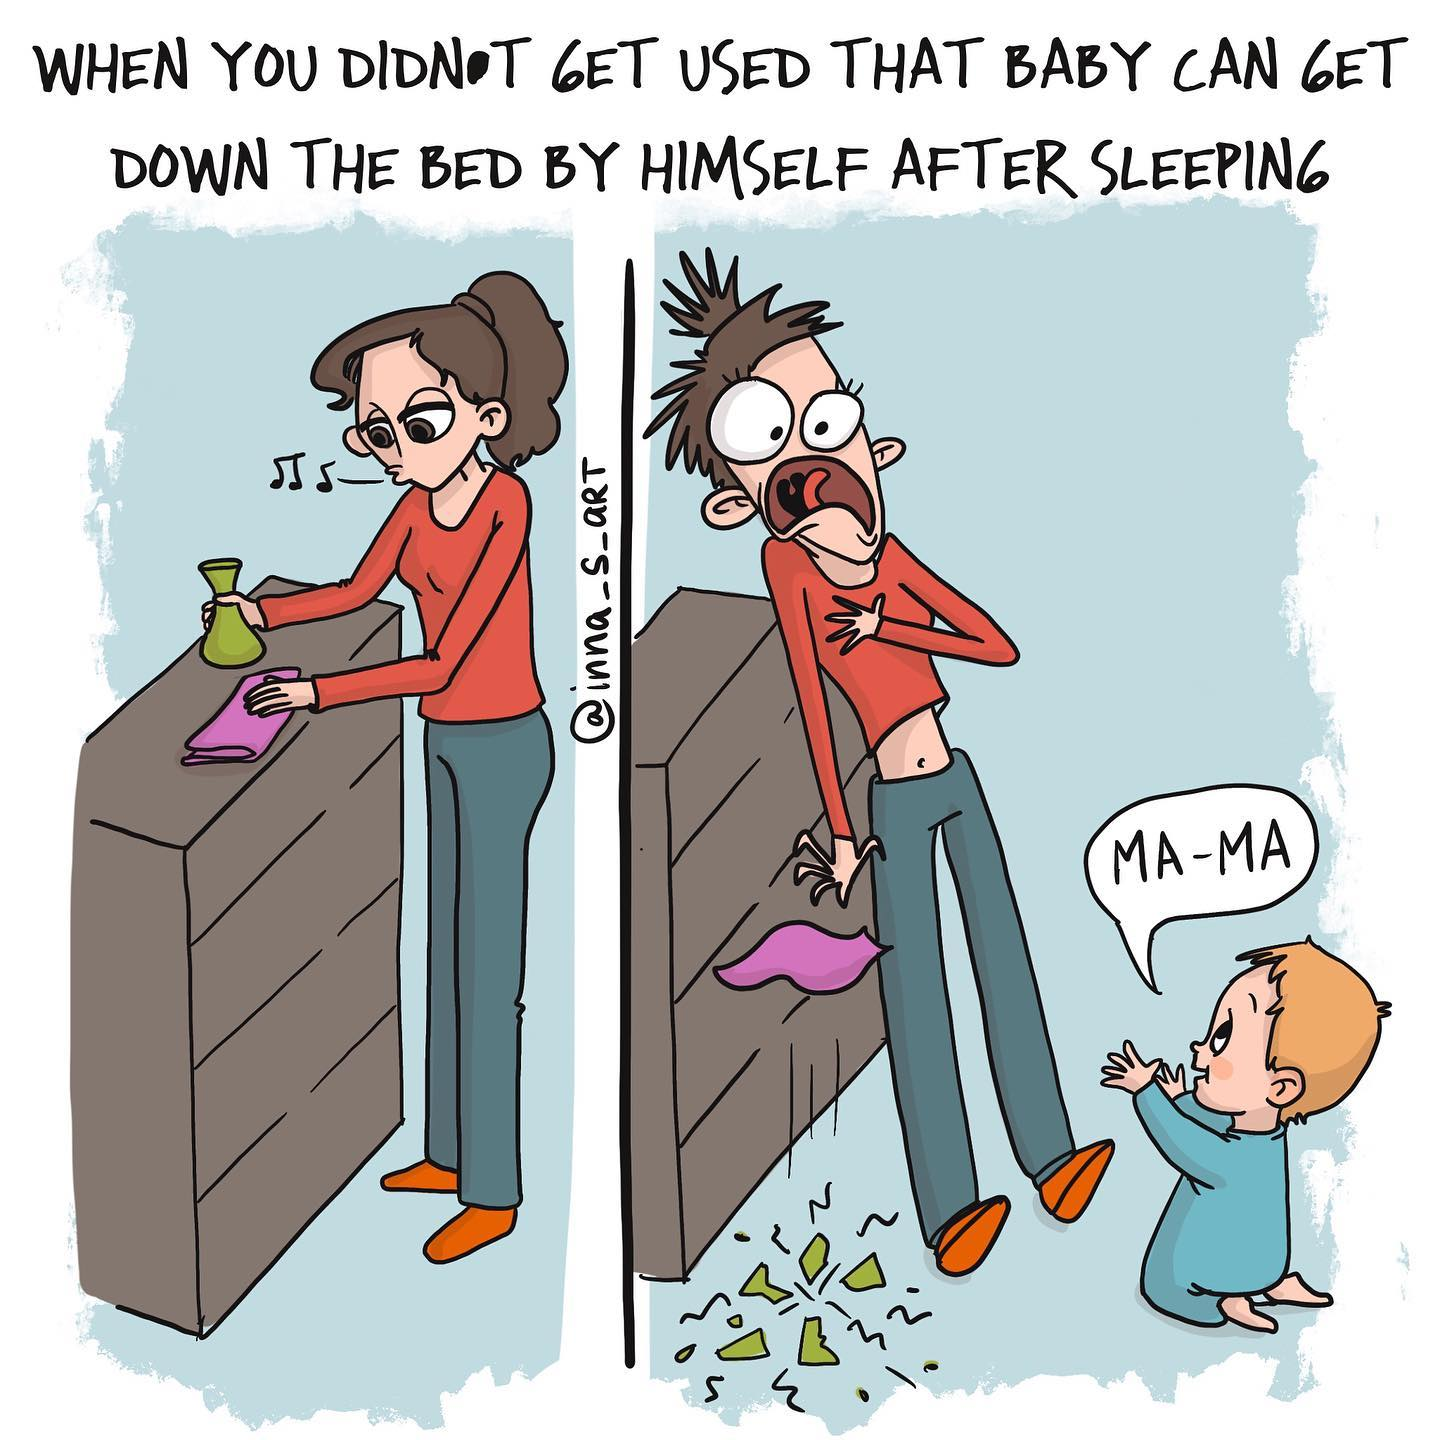 comics of a shocked mom because the vase got broken by her child